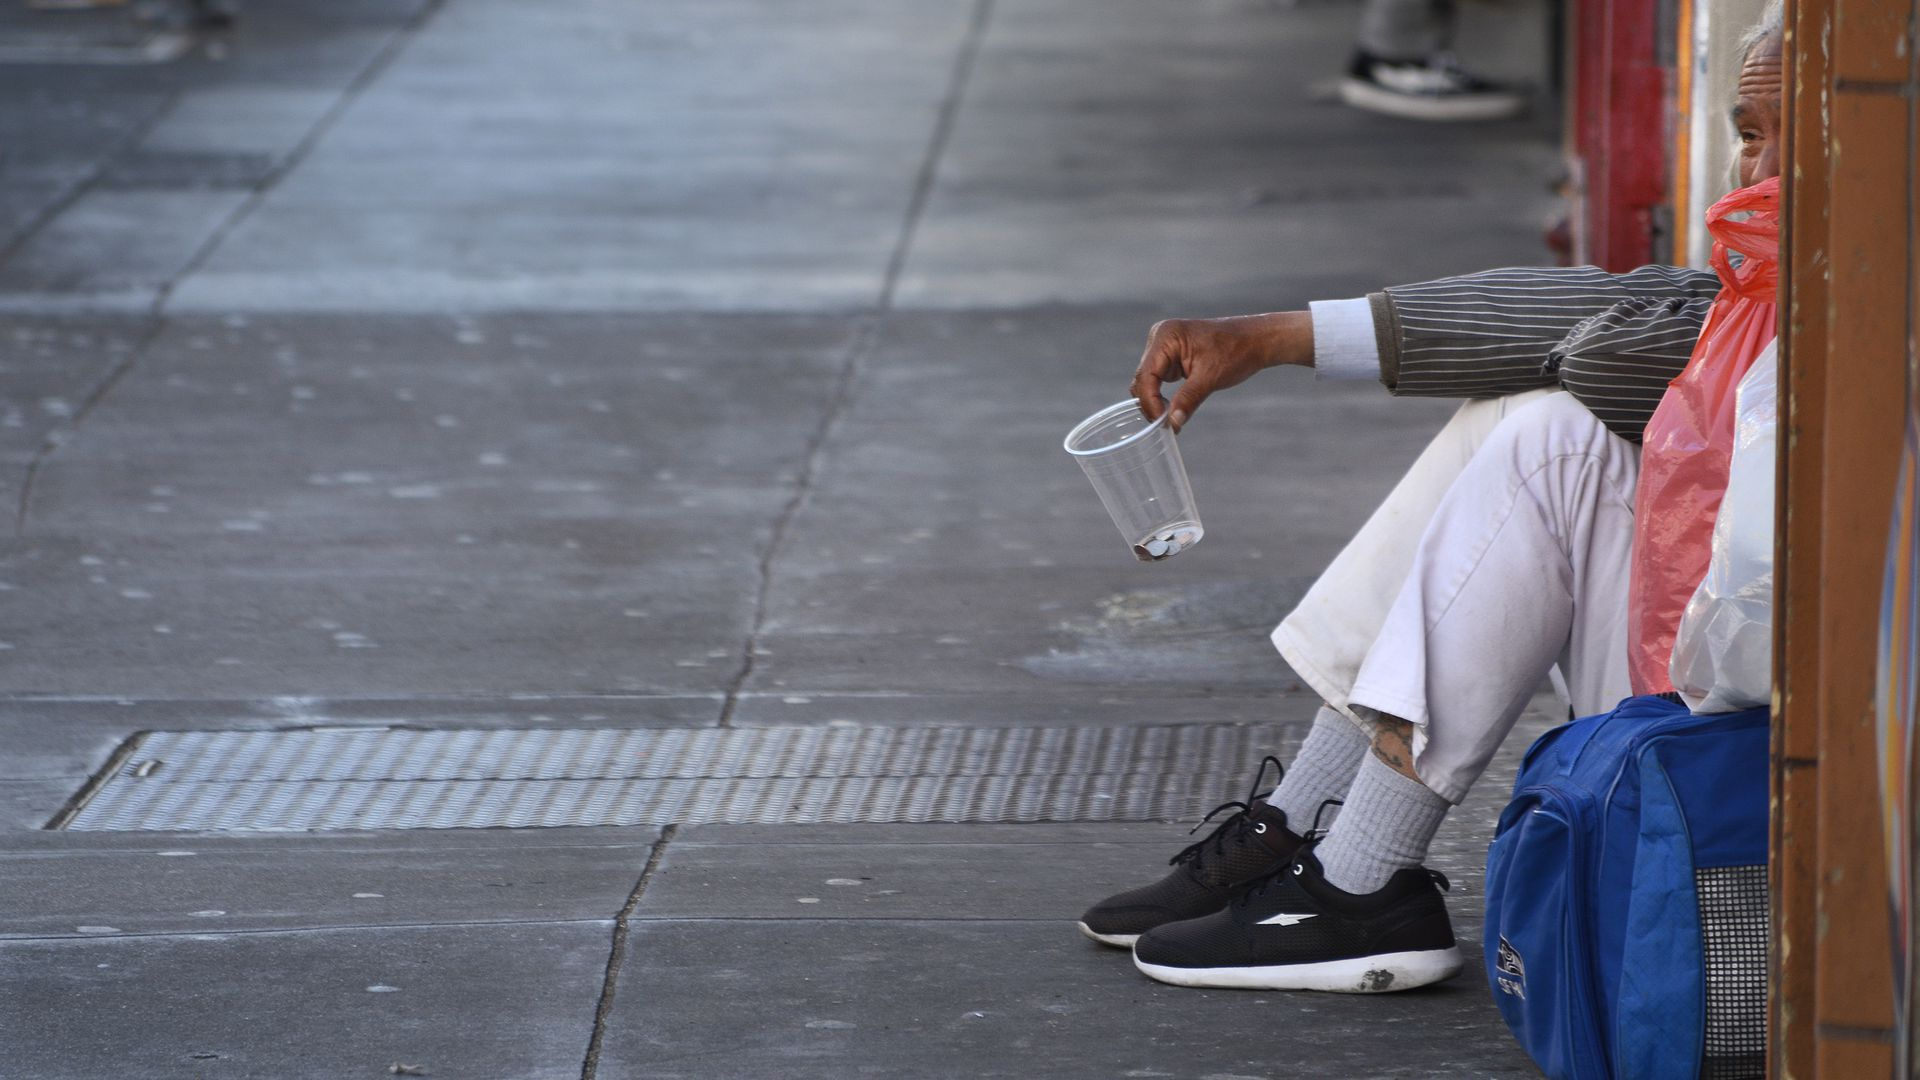 Homeless person in San Fransisco